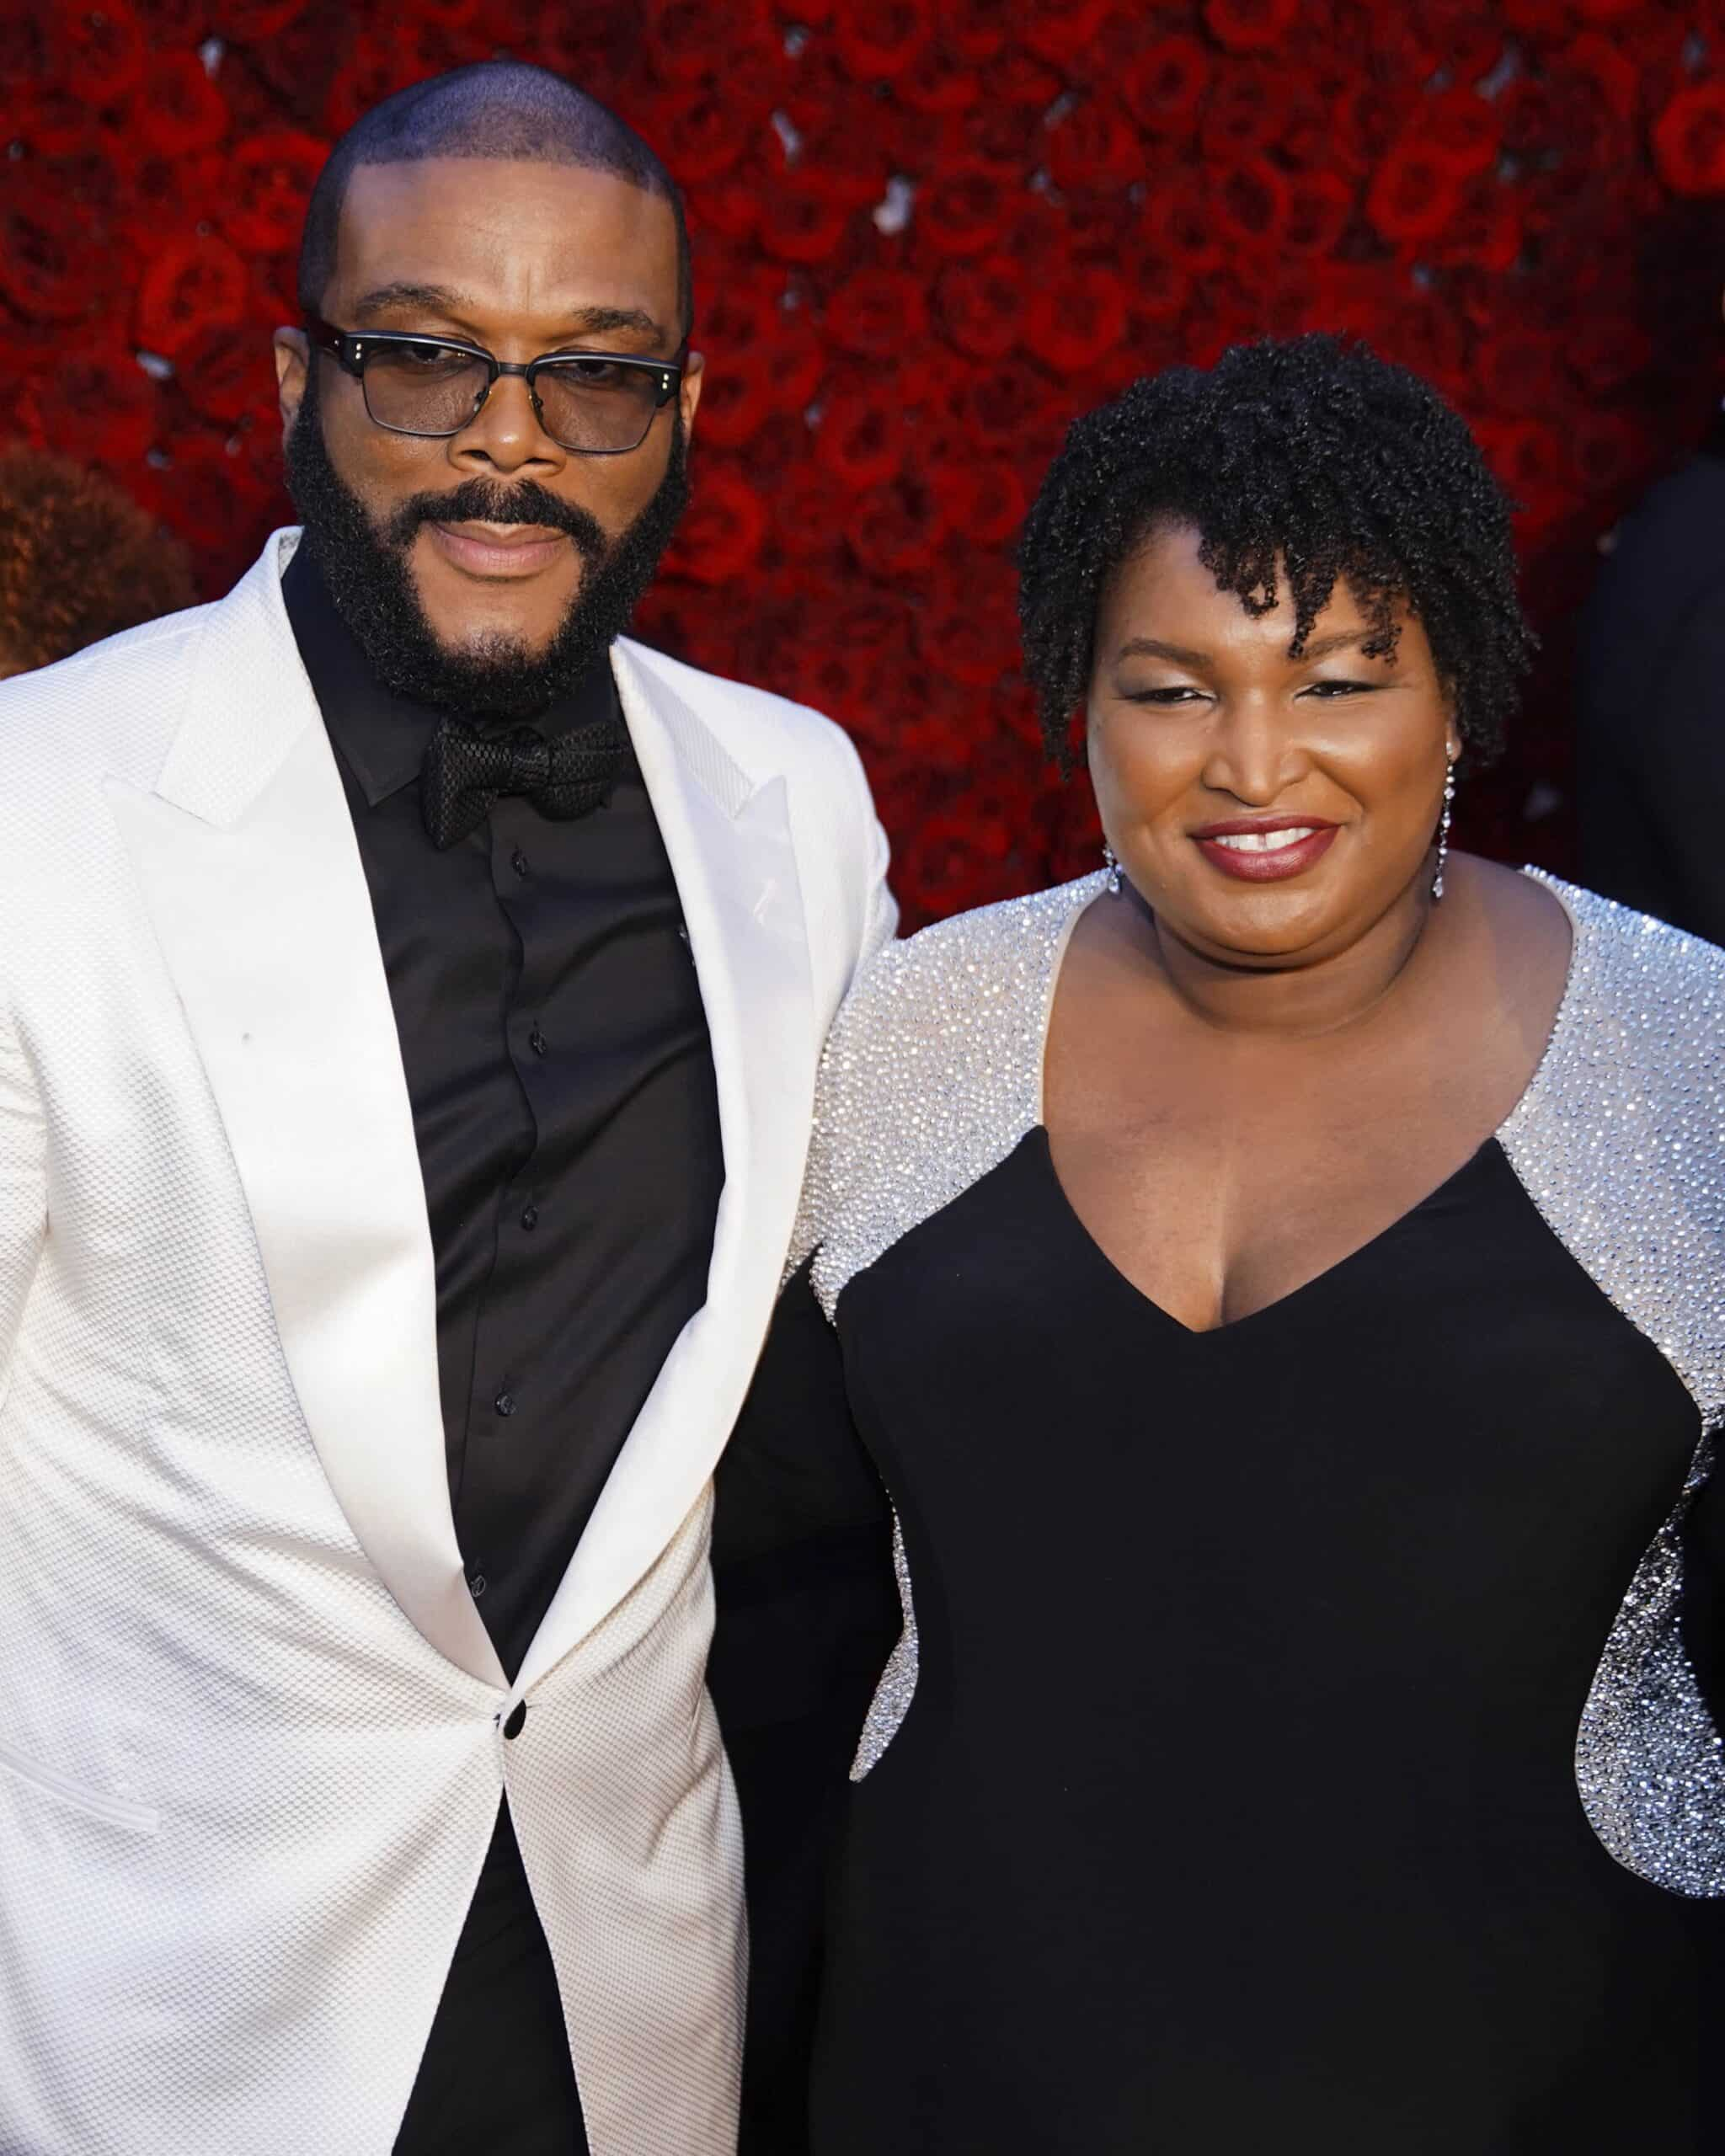 Tyler Perry Calls for DOJ Investigation of Georgia's Voter Integrity Law: 'Unconstitutional Voter Suppression' 1